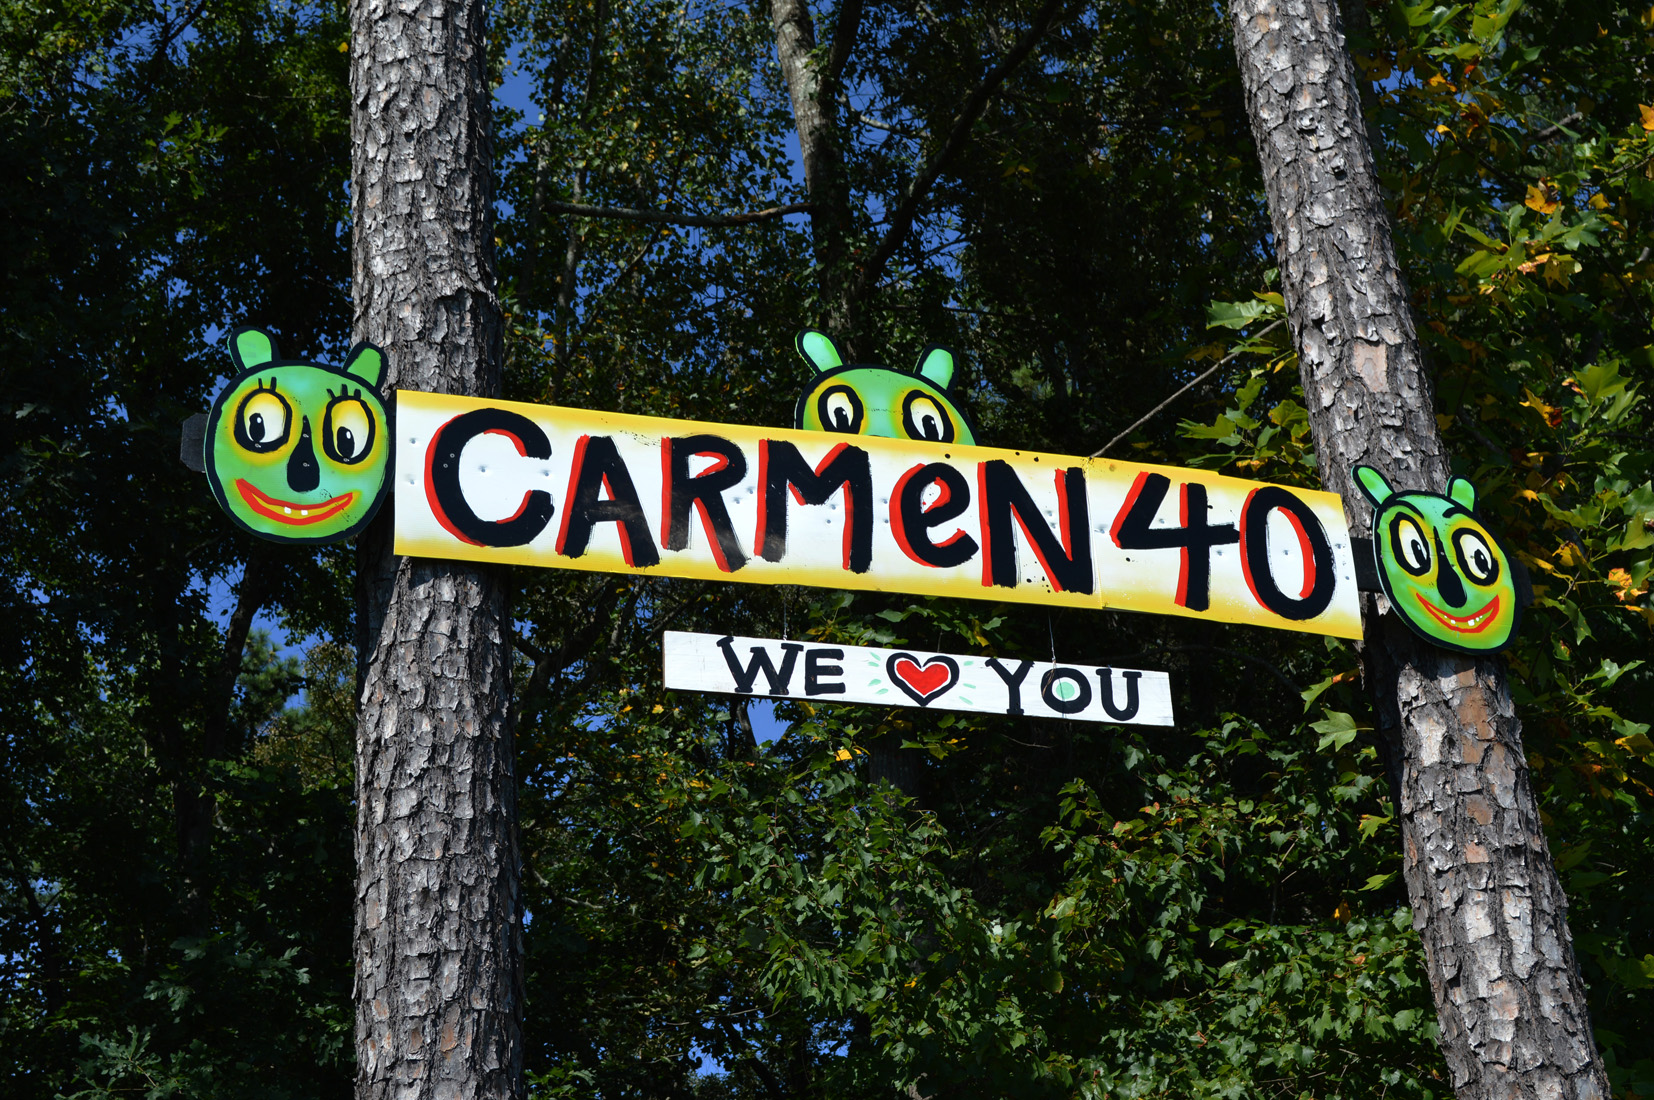 carmen40 streetfolk sign blackcattips - 1 folk art roadside georgia